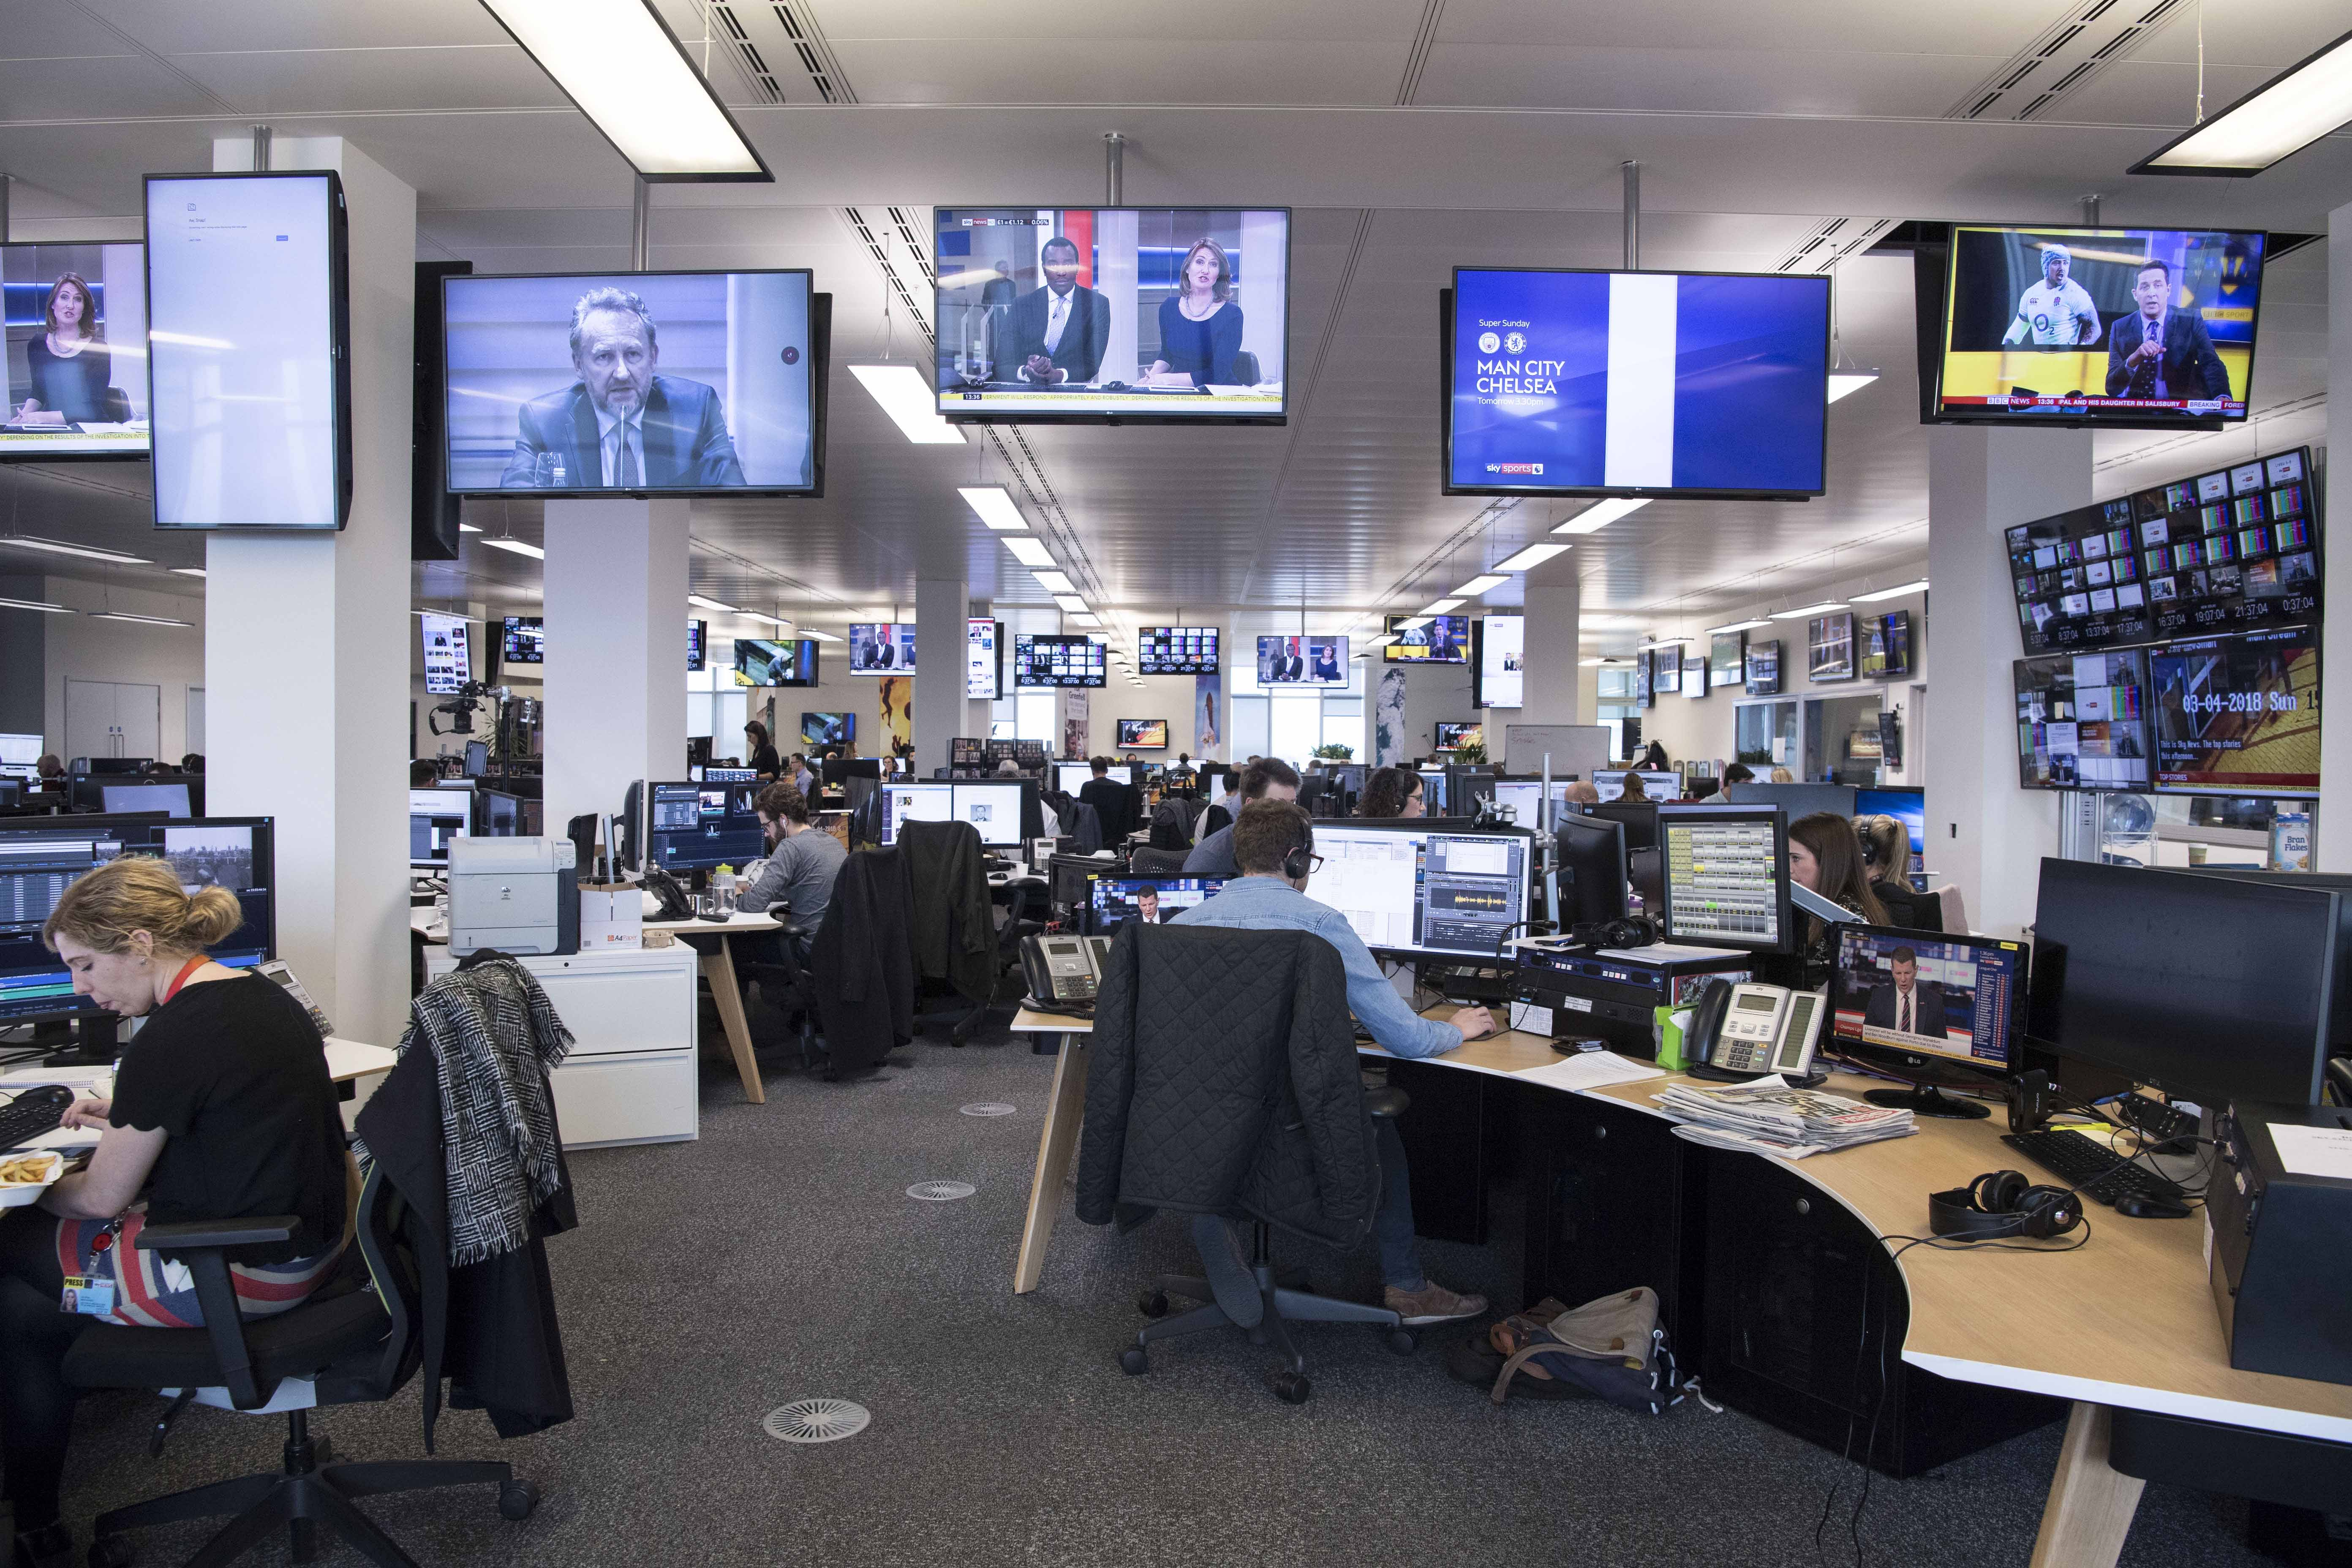 Satellite television is a popular option for television viewing without a cable subscription or antenna. Sky News to launch newsroom livestream - TVBEurope